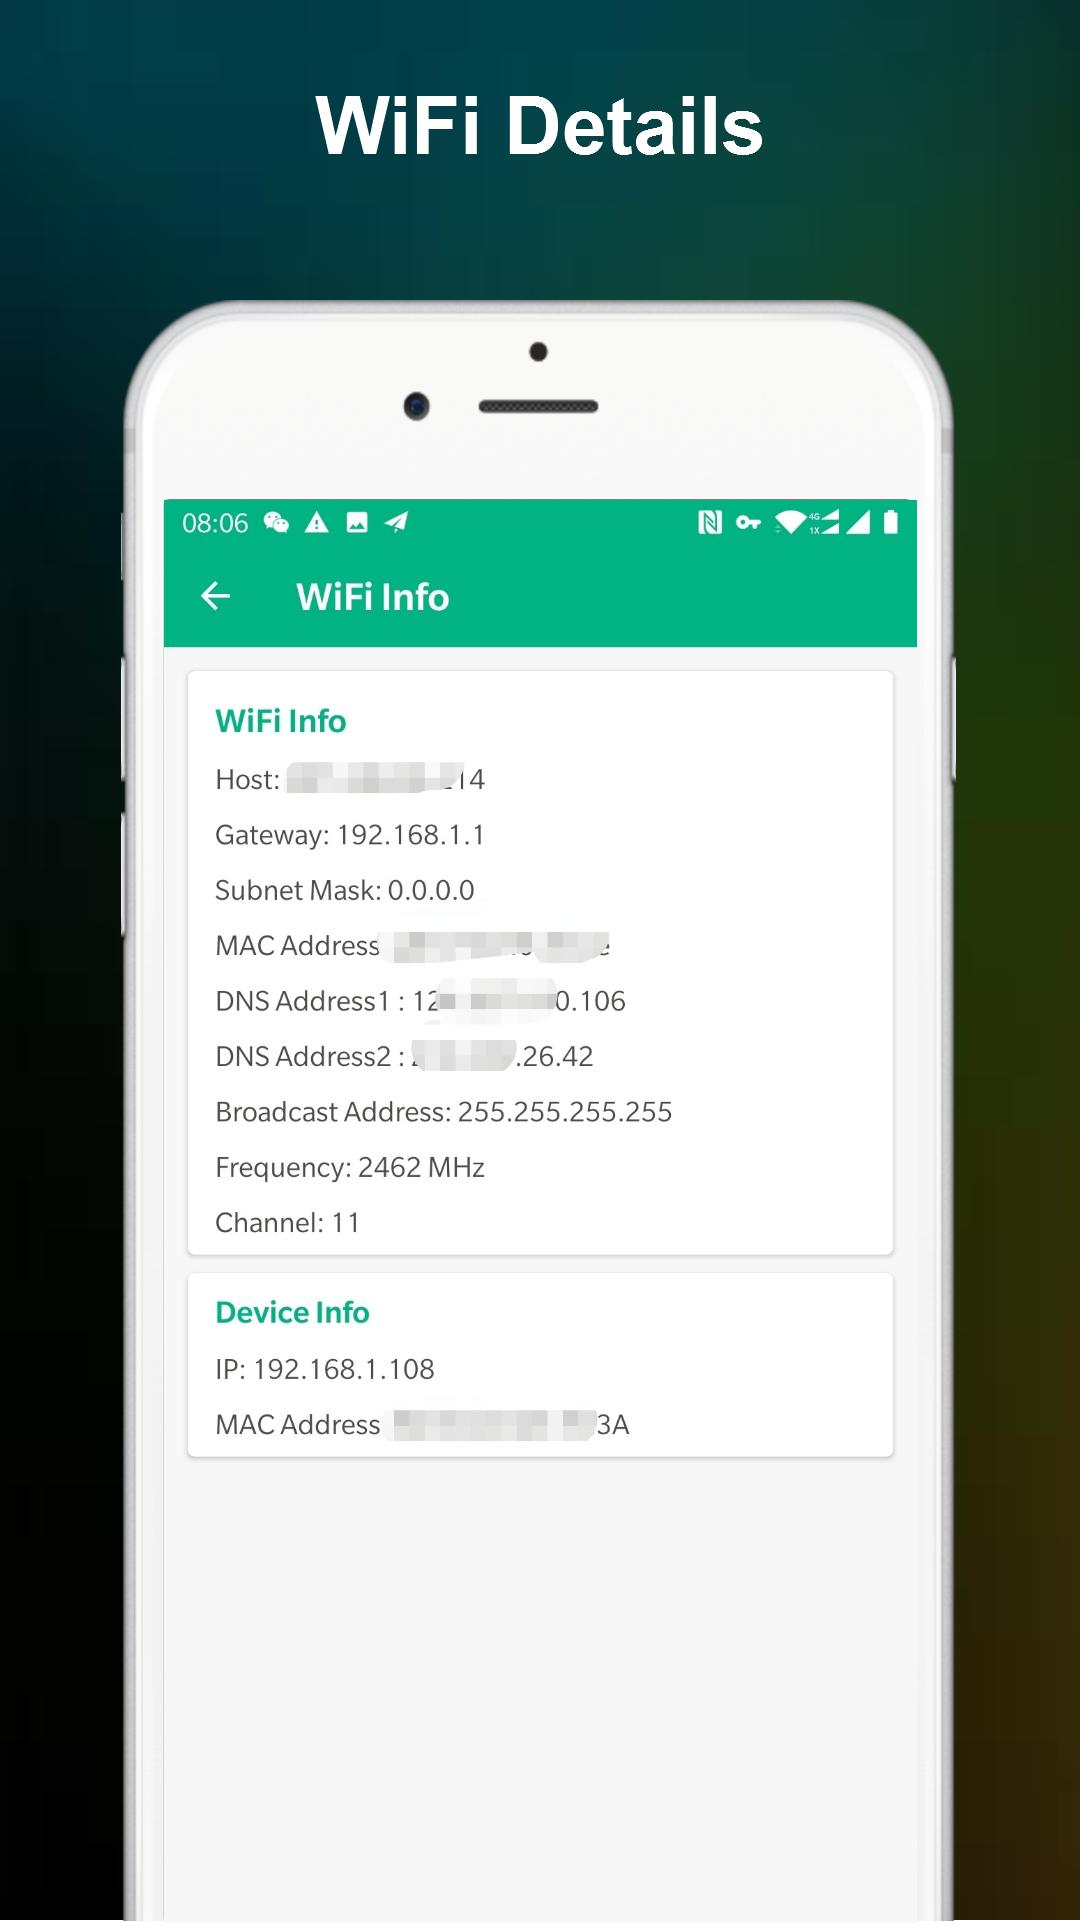 WiFi Signal Strength Meter Pro(No Ads) for Android - APK Download